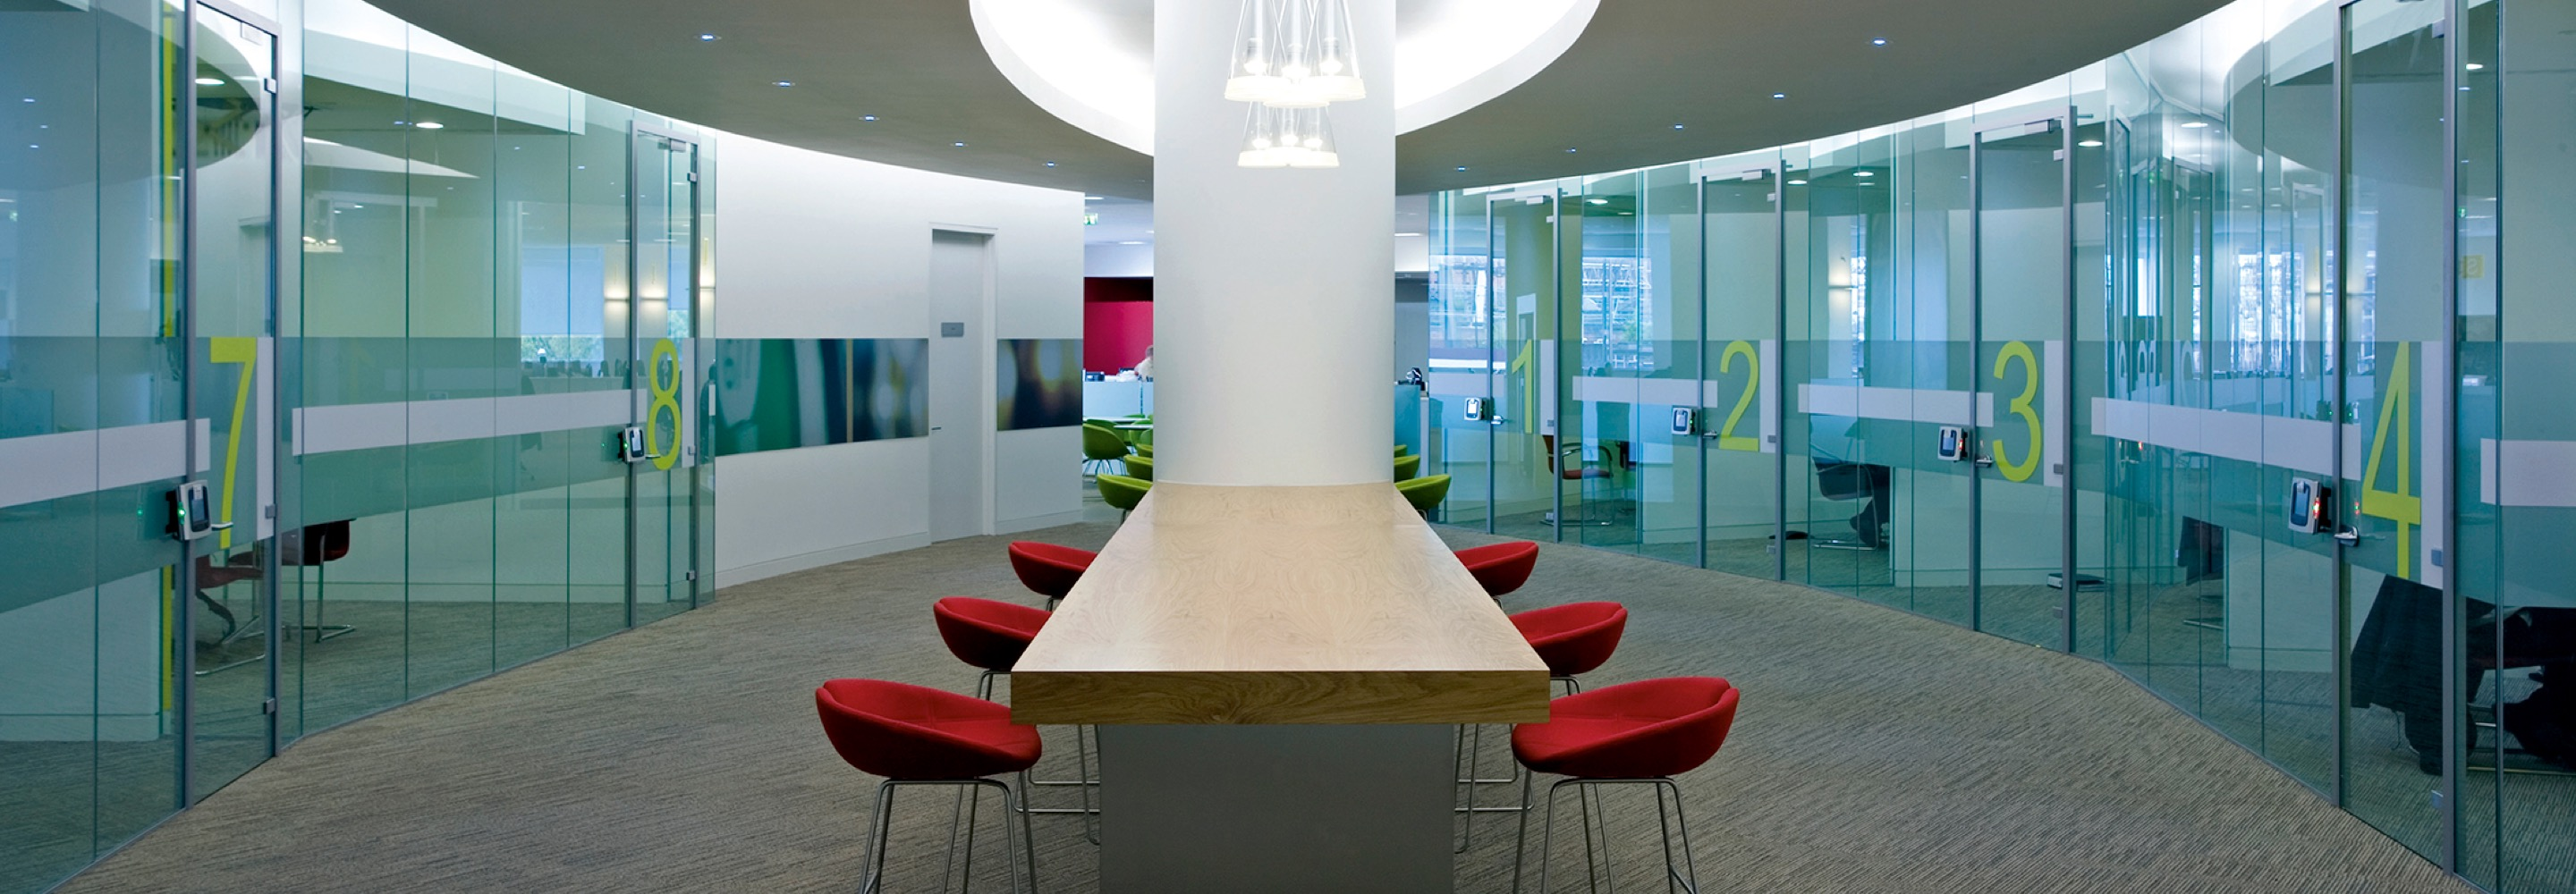 Corporate Interiors Design and Build - contemporary office meeting area